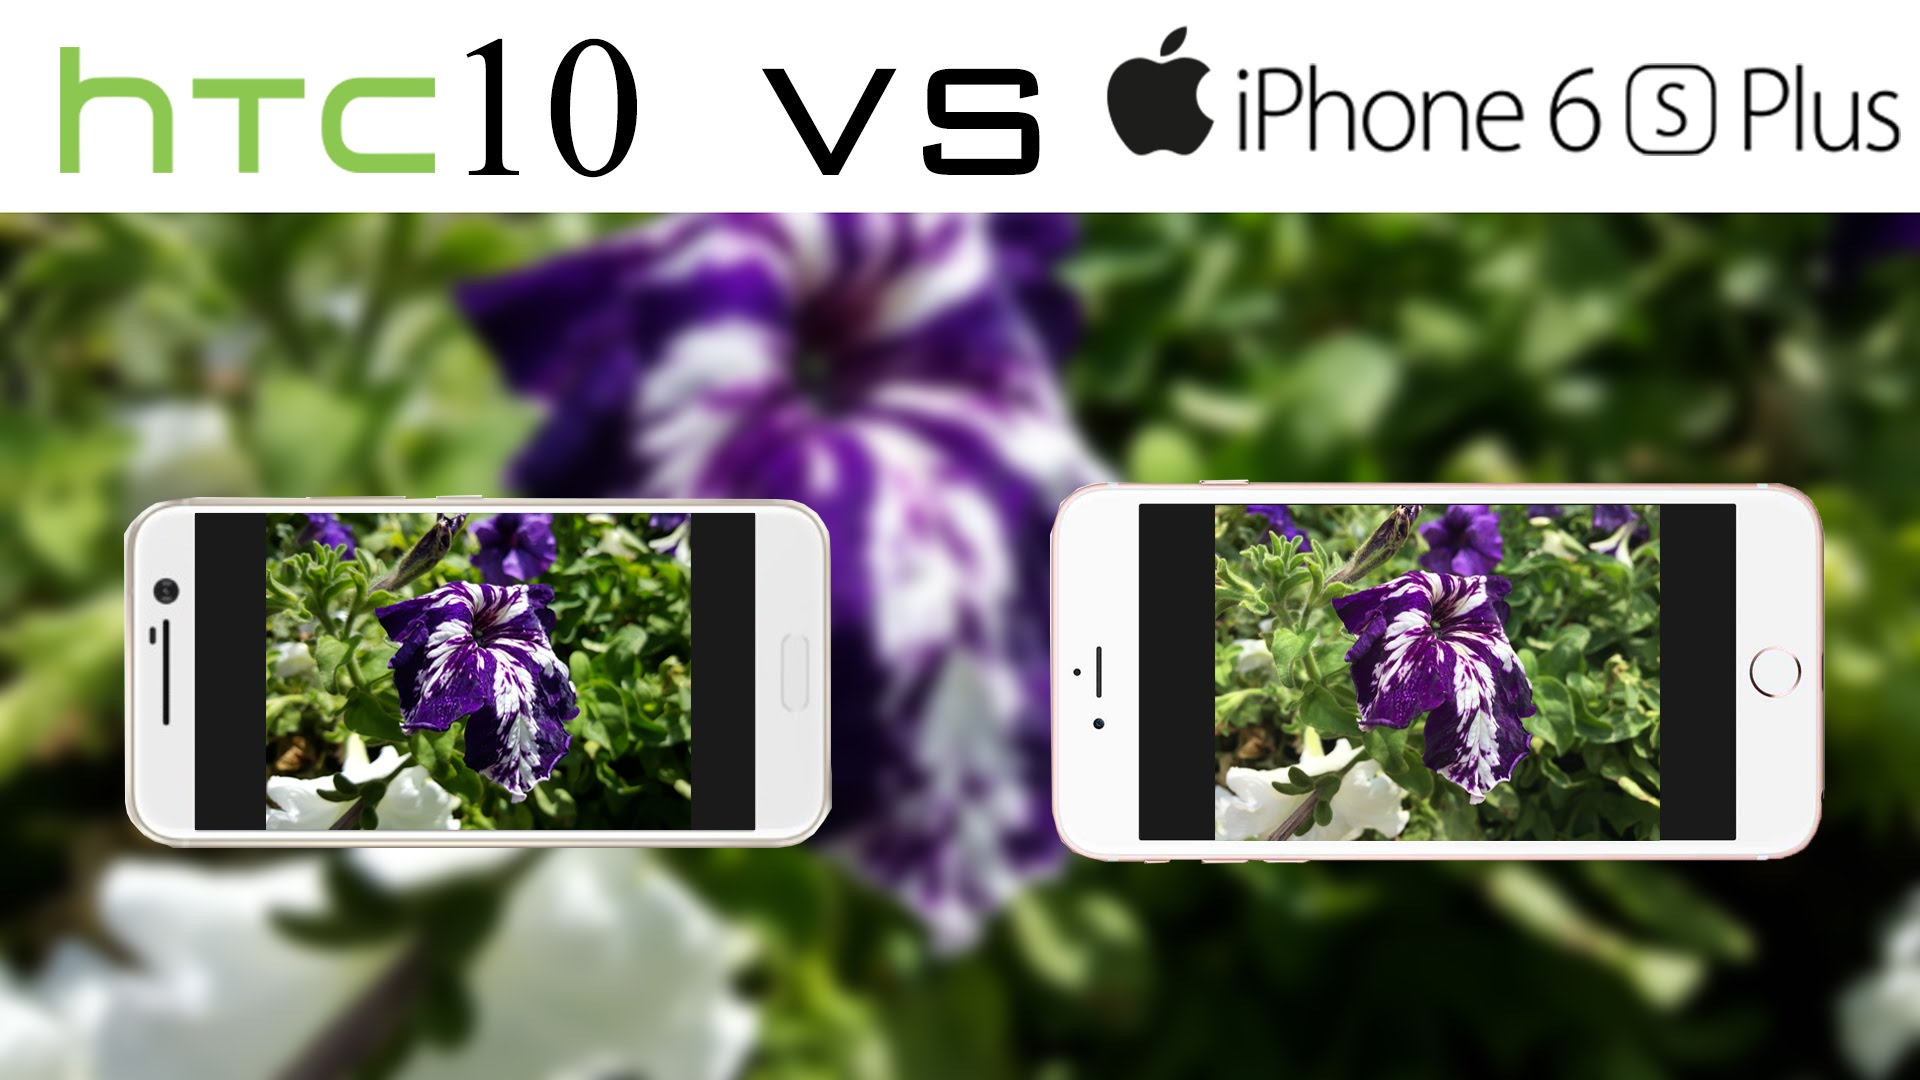 Camera quality: HTC 10 vs iPhone 7